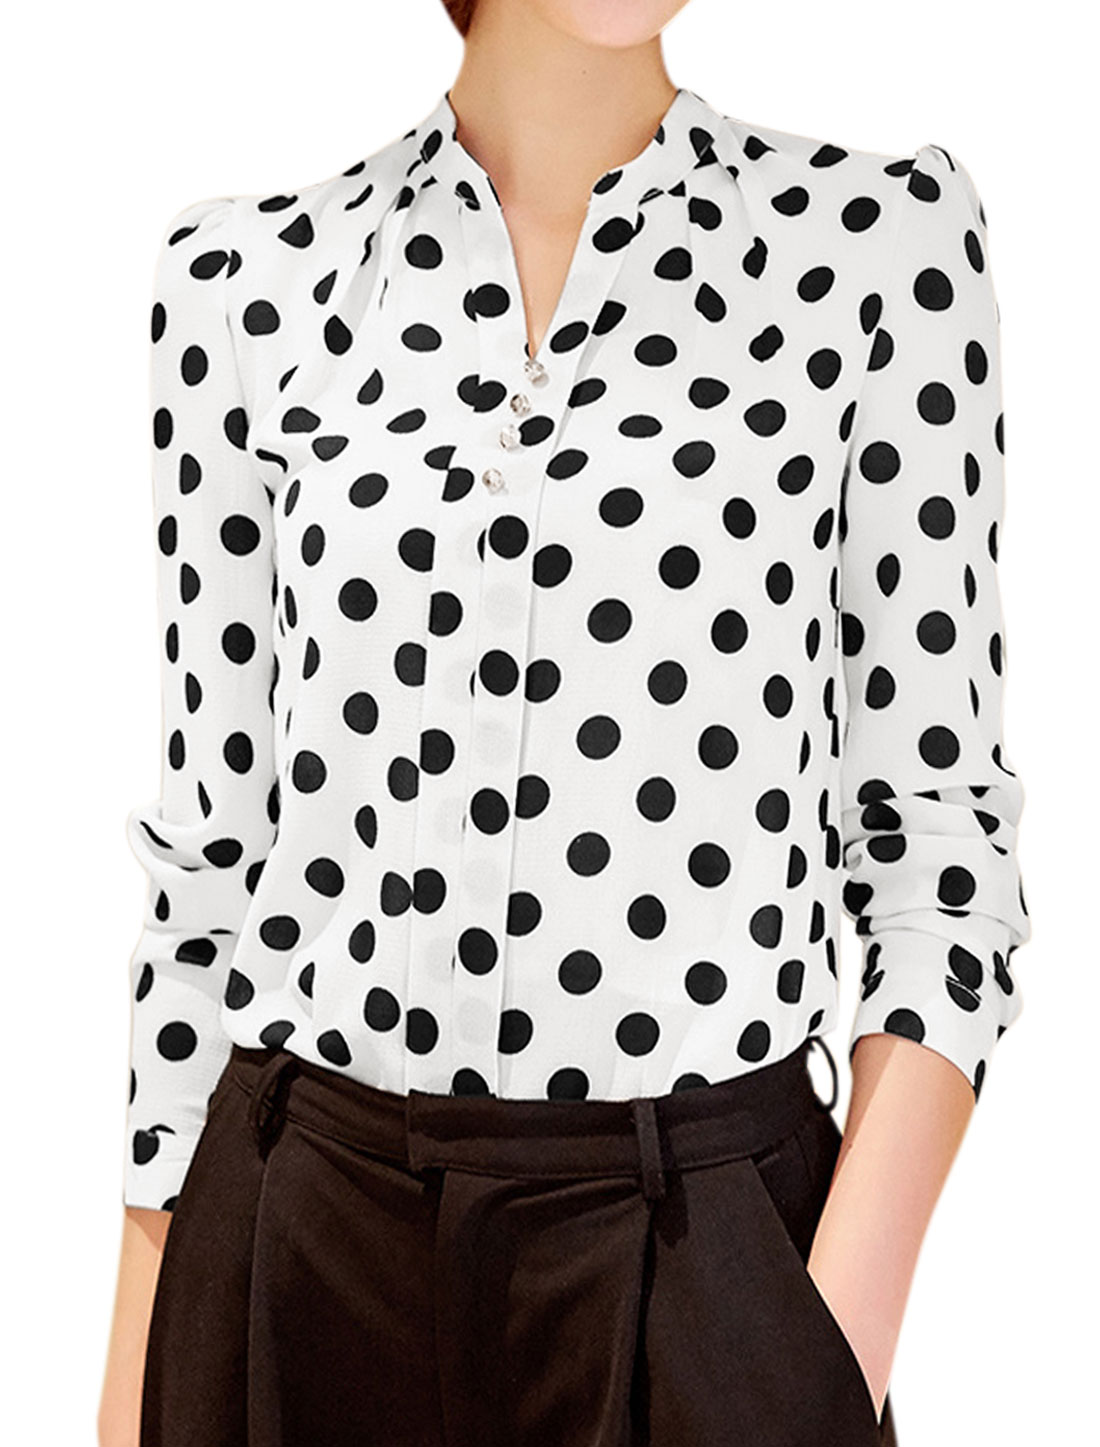 Women Stand Collar Button Decor Polka Dots Print Blouse White M